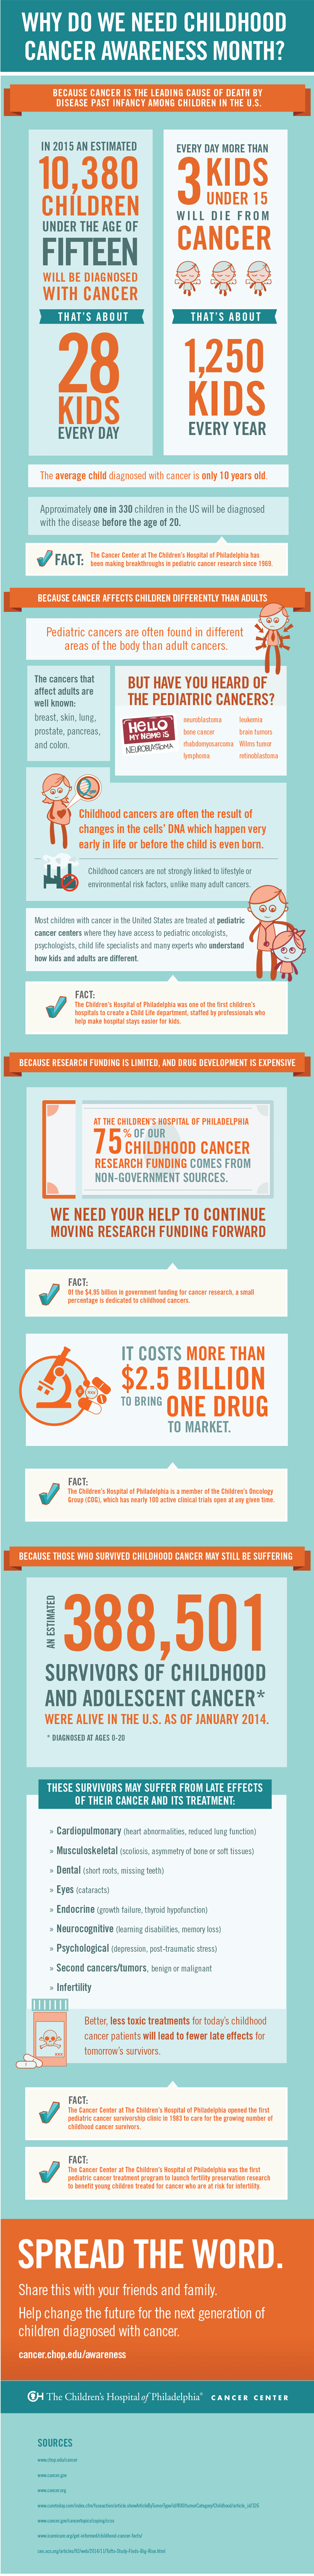 Cancer Awareness Month Infographic